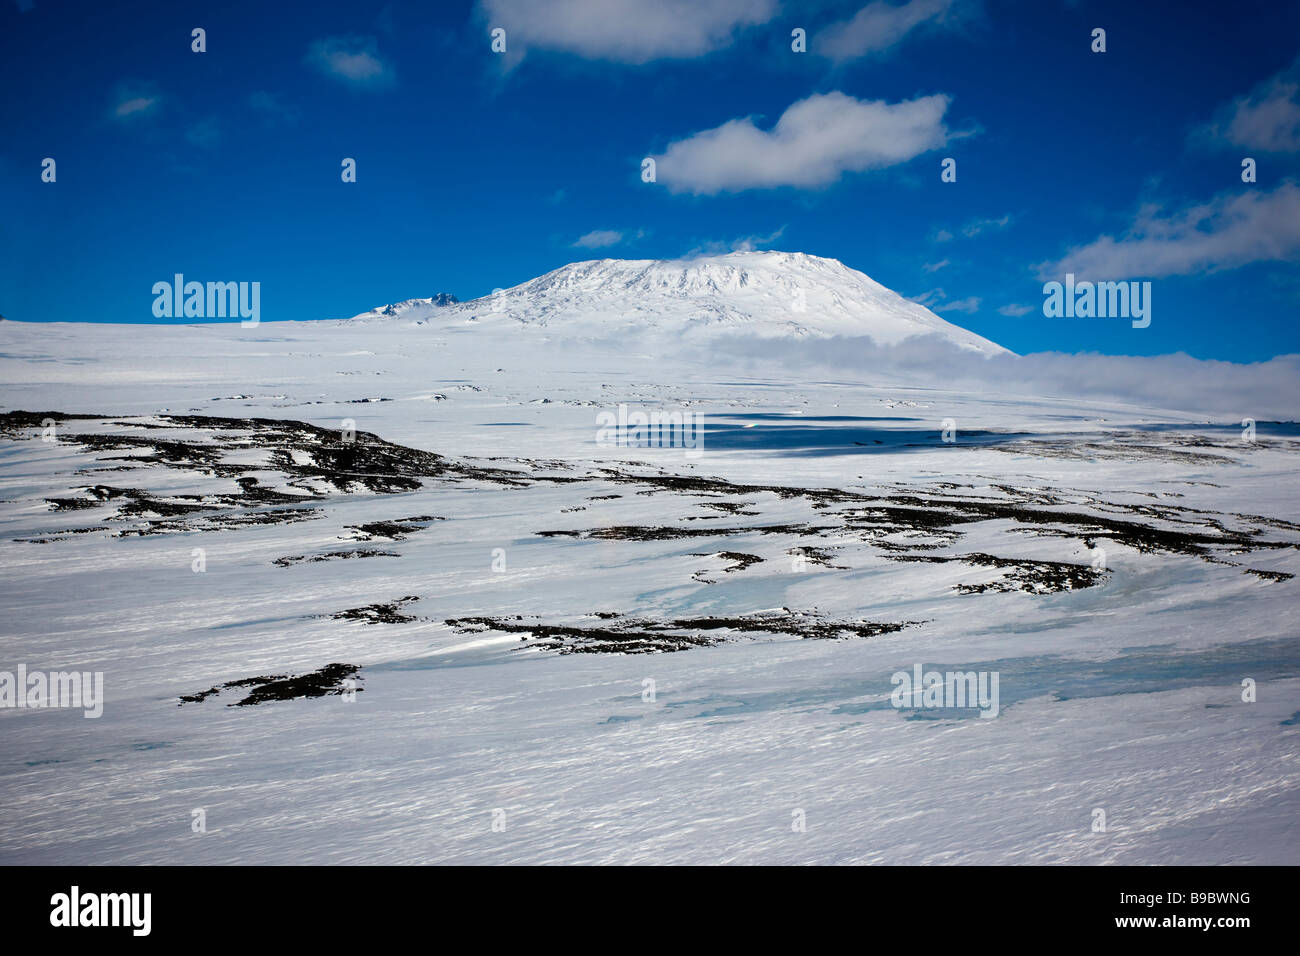 Antarctica Mount Erebus From The Air Aerial - Stock Image